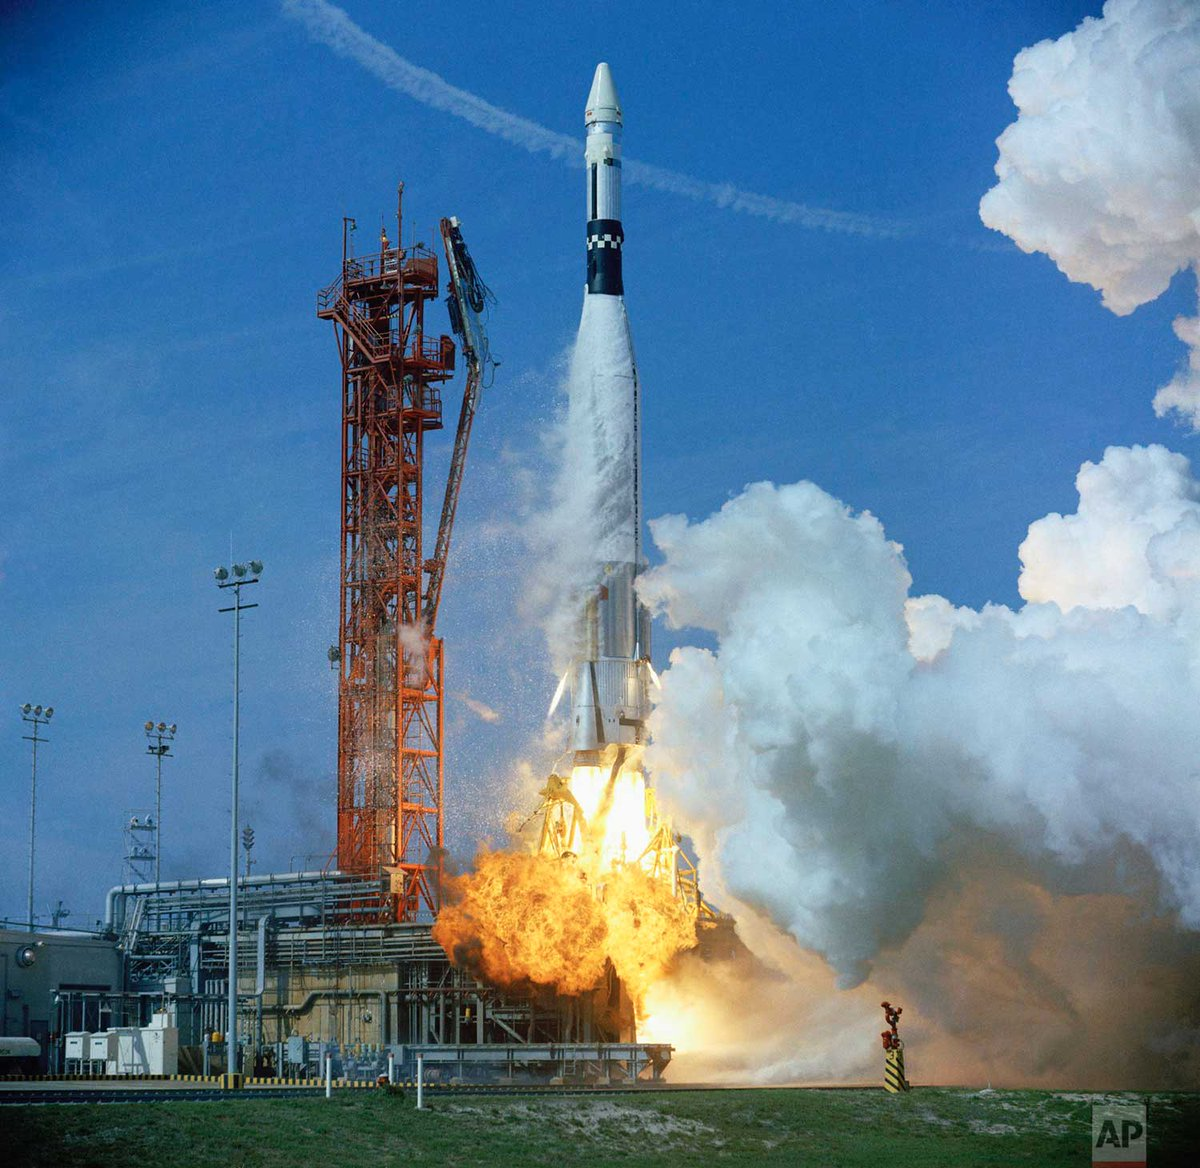 b59740b9d8 Blast off of spacecraft with astronauts David Scott and Neil Armstrong  aboard